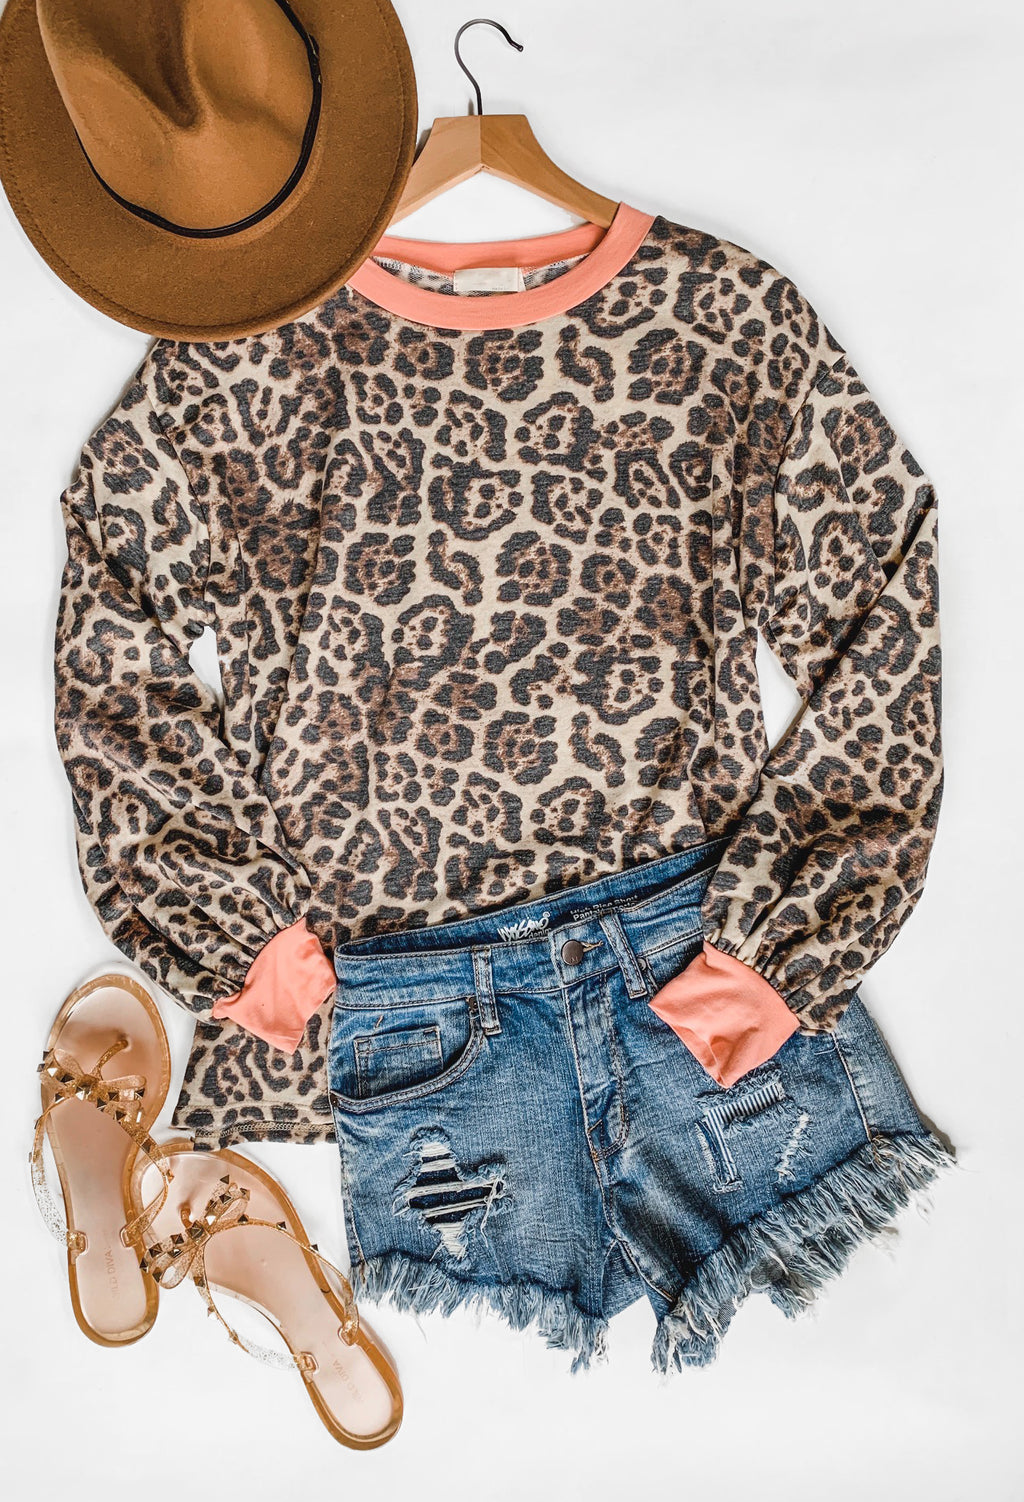 Zara Cheetah Top